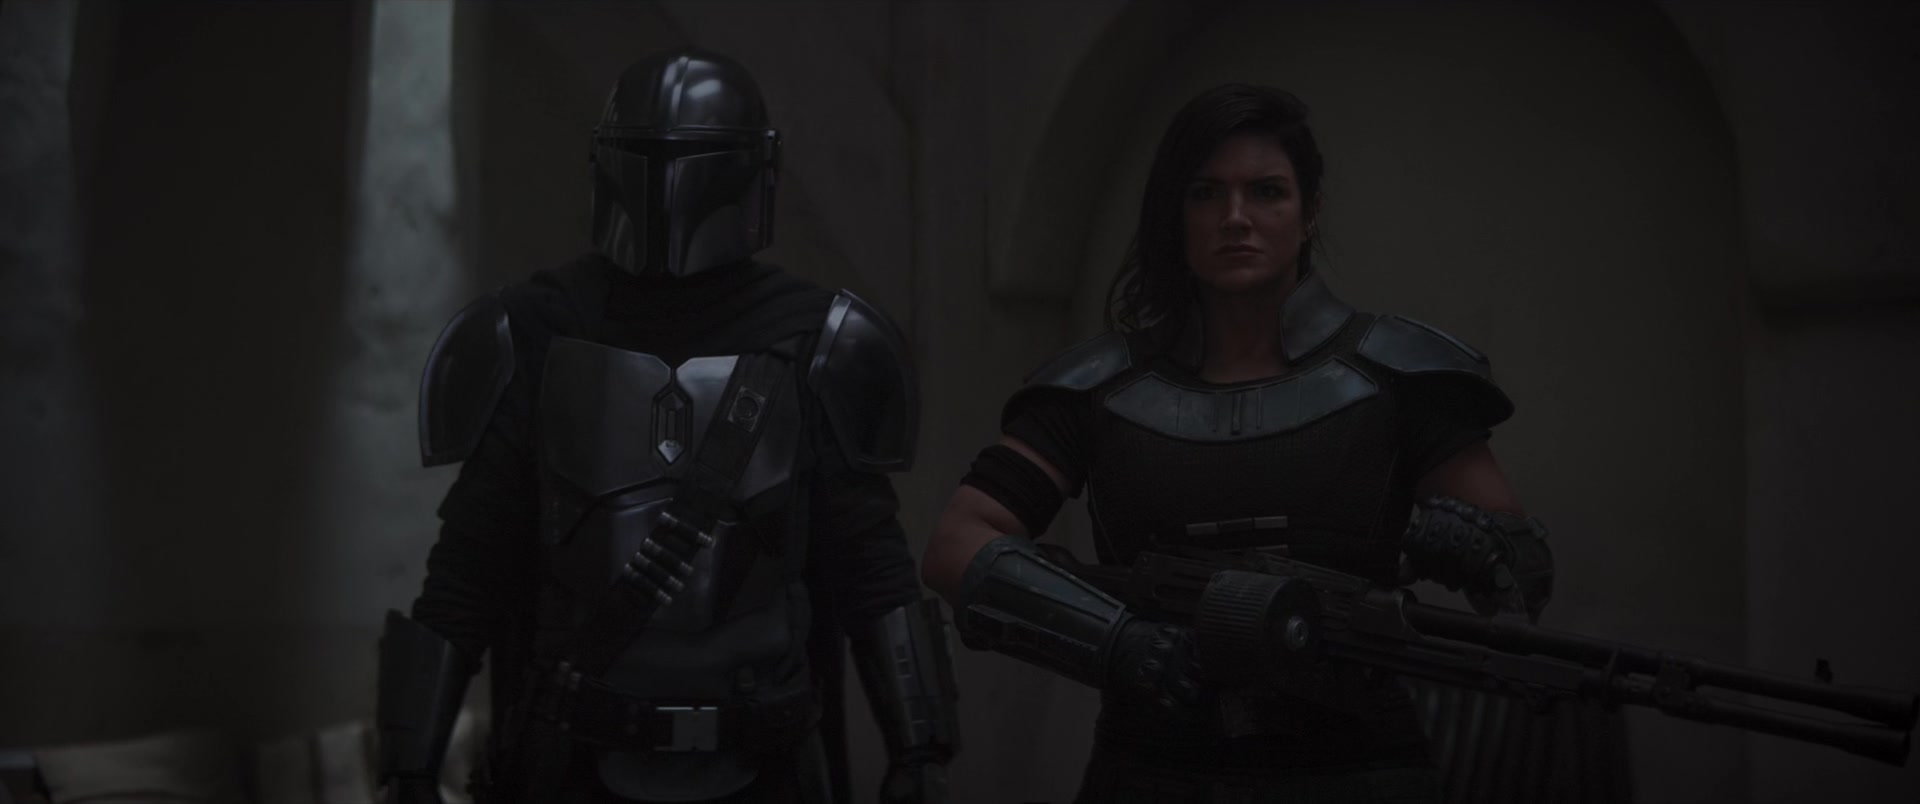 star wars the mandalorian chapter 8 redemption din djarin cara dune